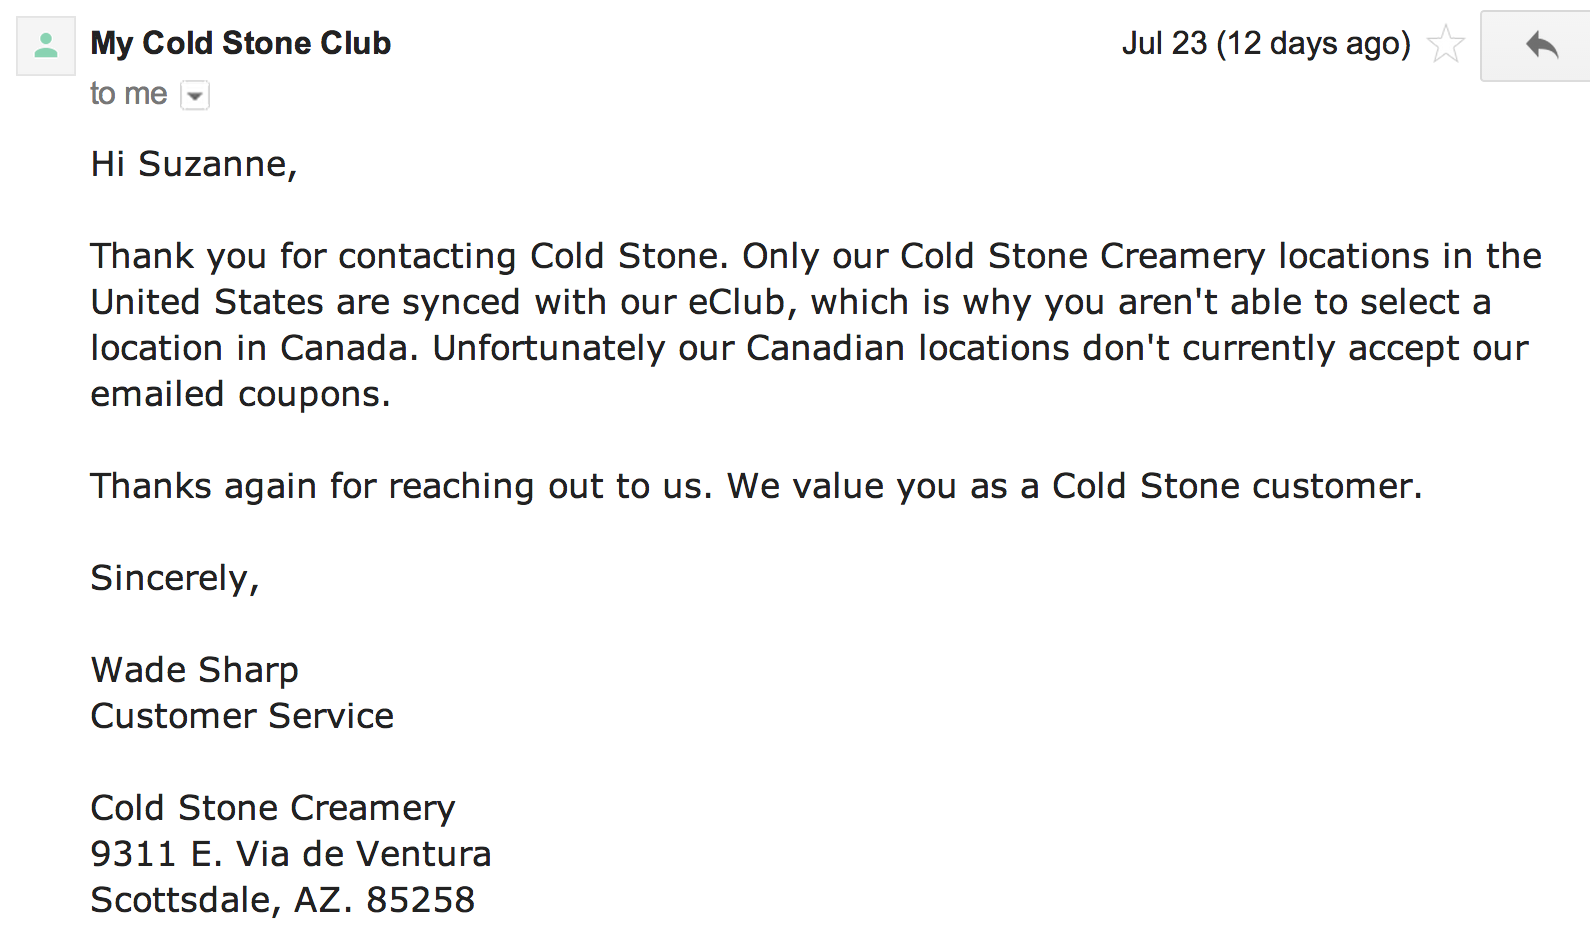 Cold Stone Creamery Ice Cream Coupons only valid in USA